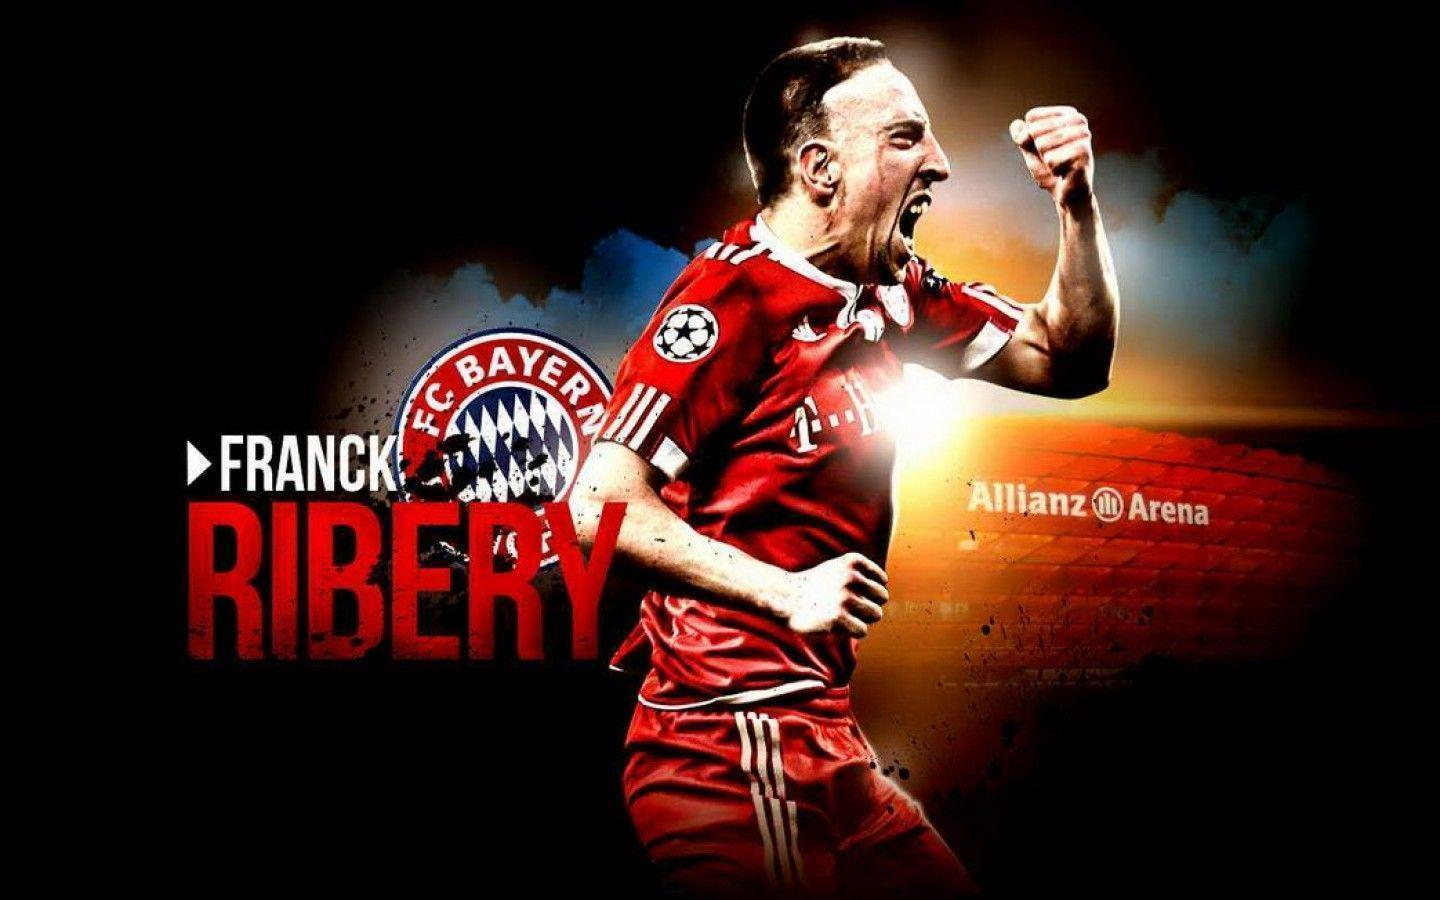 Fc bayern munich hd wallpapers wallpaper cave franck ribery fc bayern munich hd wallpaper in desktop wallpaper voltagebd Images